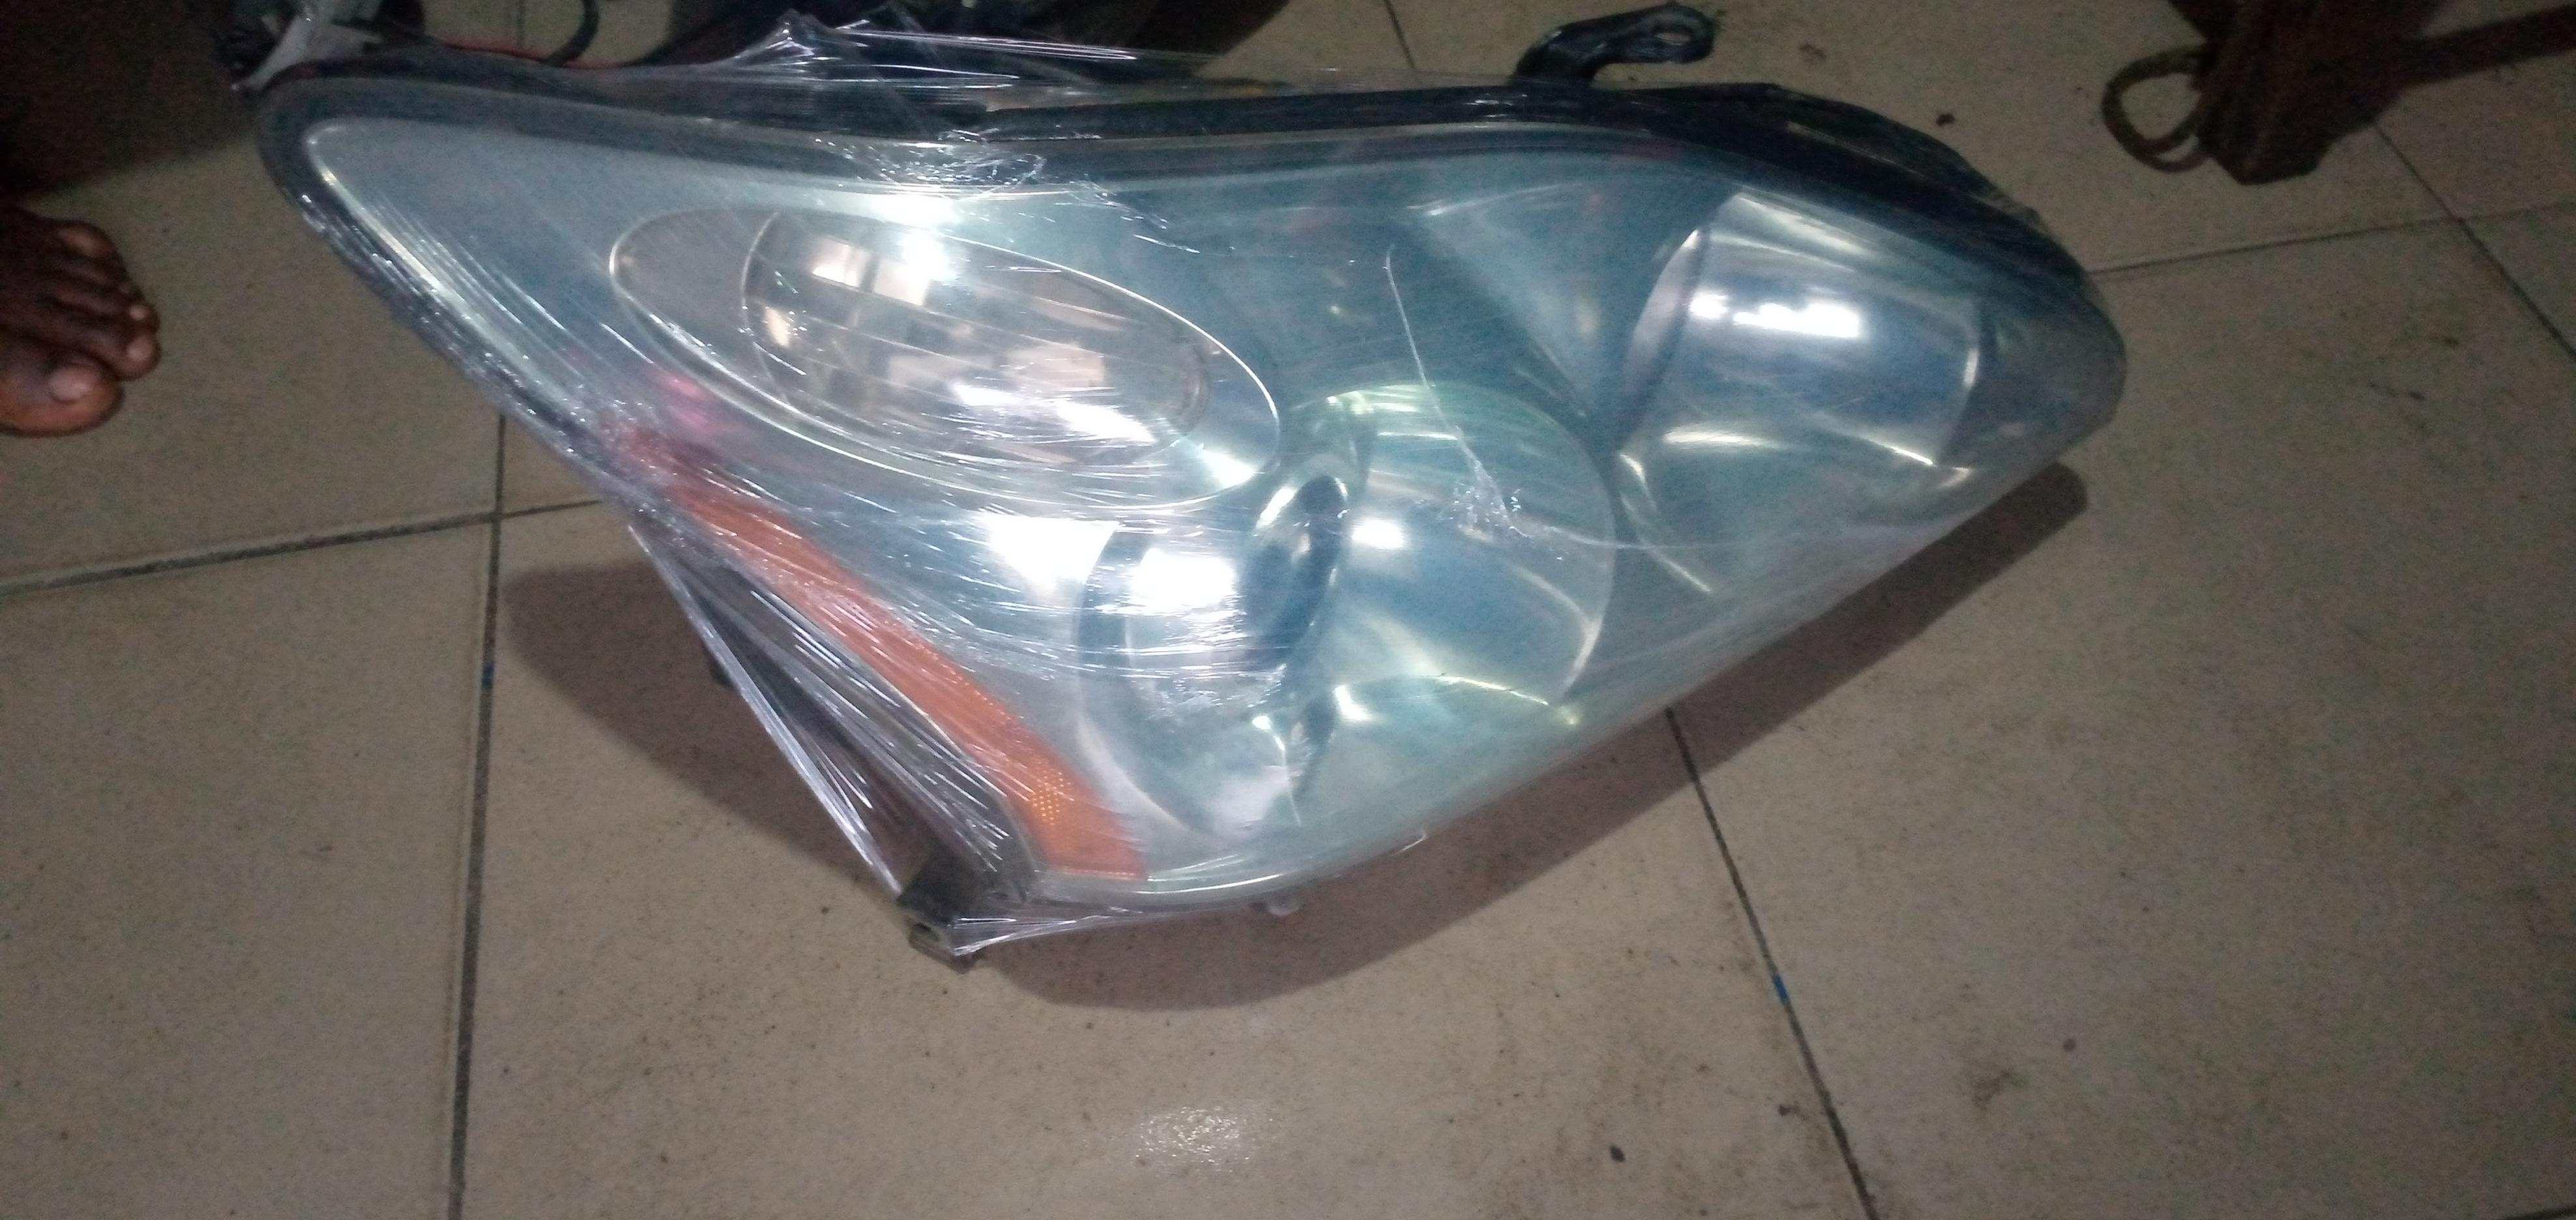 FAIRLY USED RX330 HEADLIGHT SET